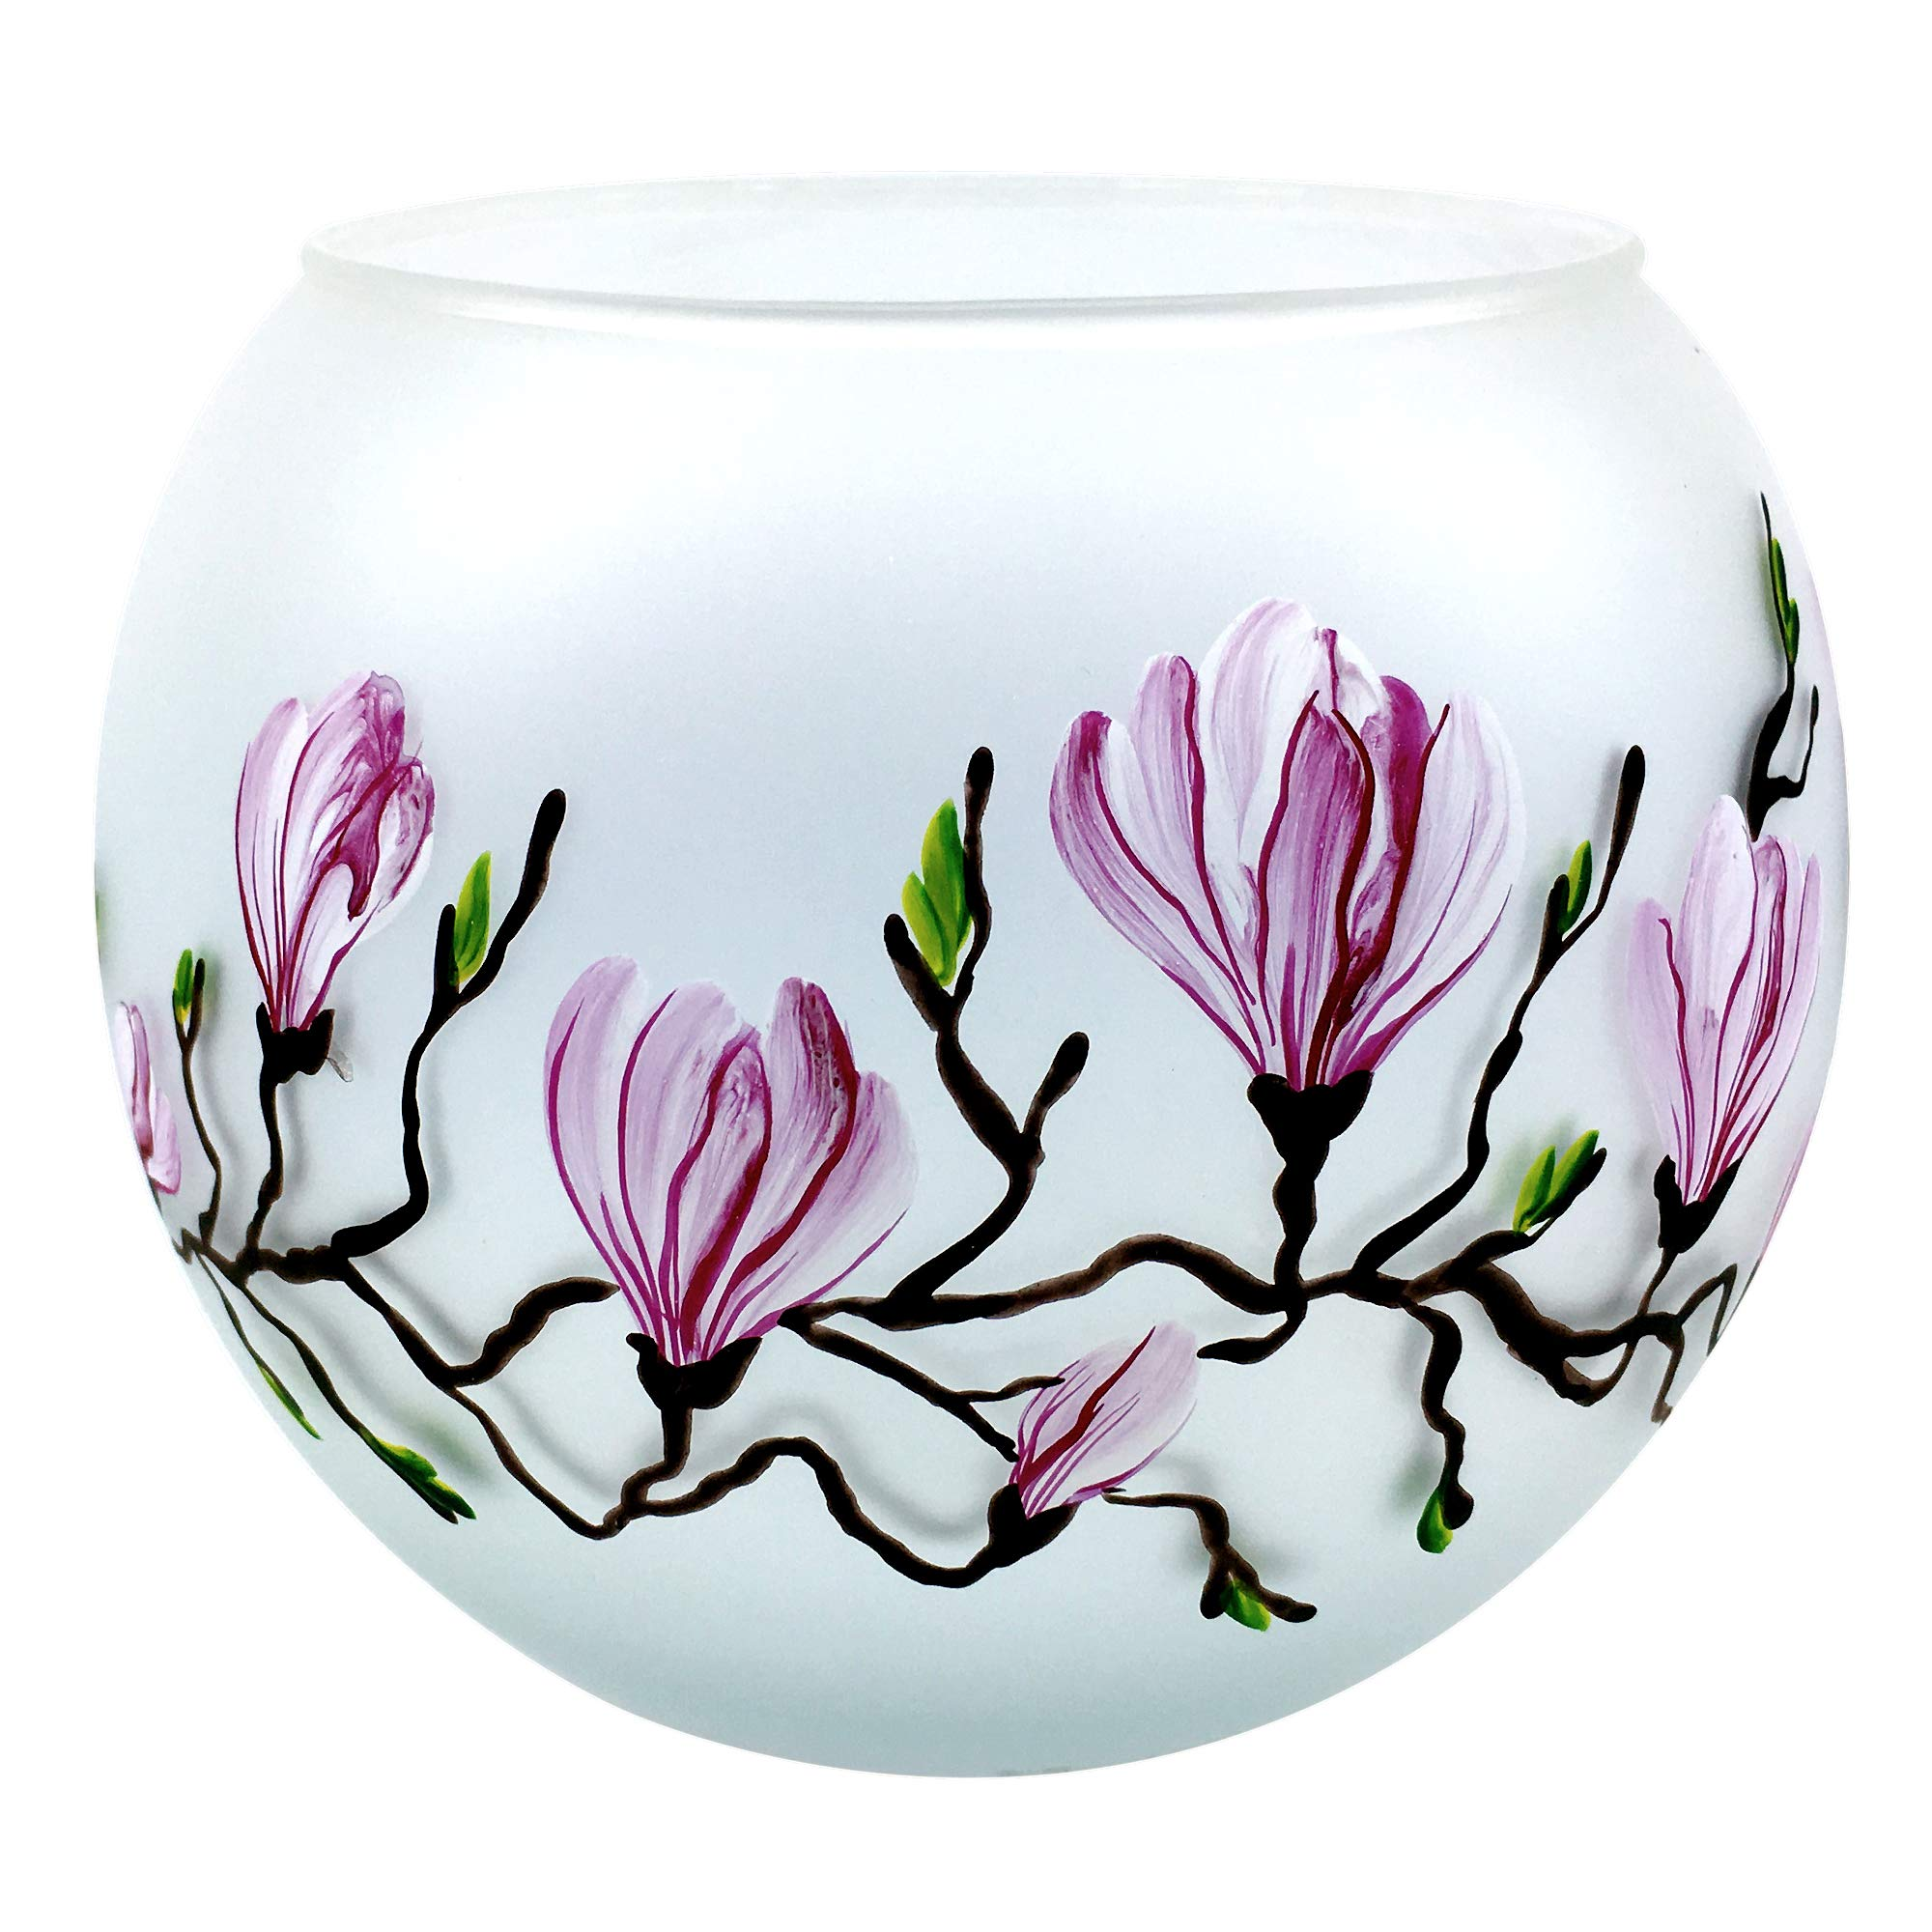 THE JOY TREE Hand-Painted Magnolia Blossom Blown Glass Candle Bowl 4.25 x 3.75 by THE JOY TREE